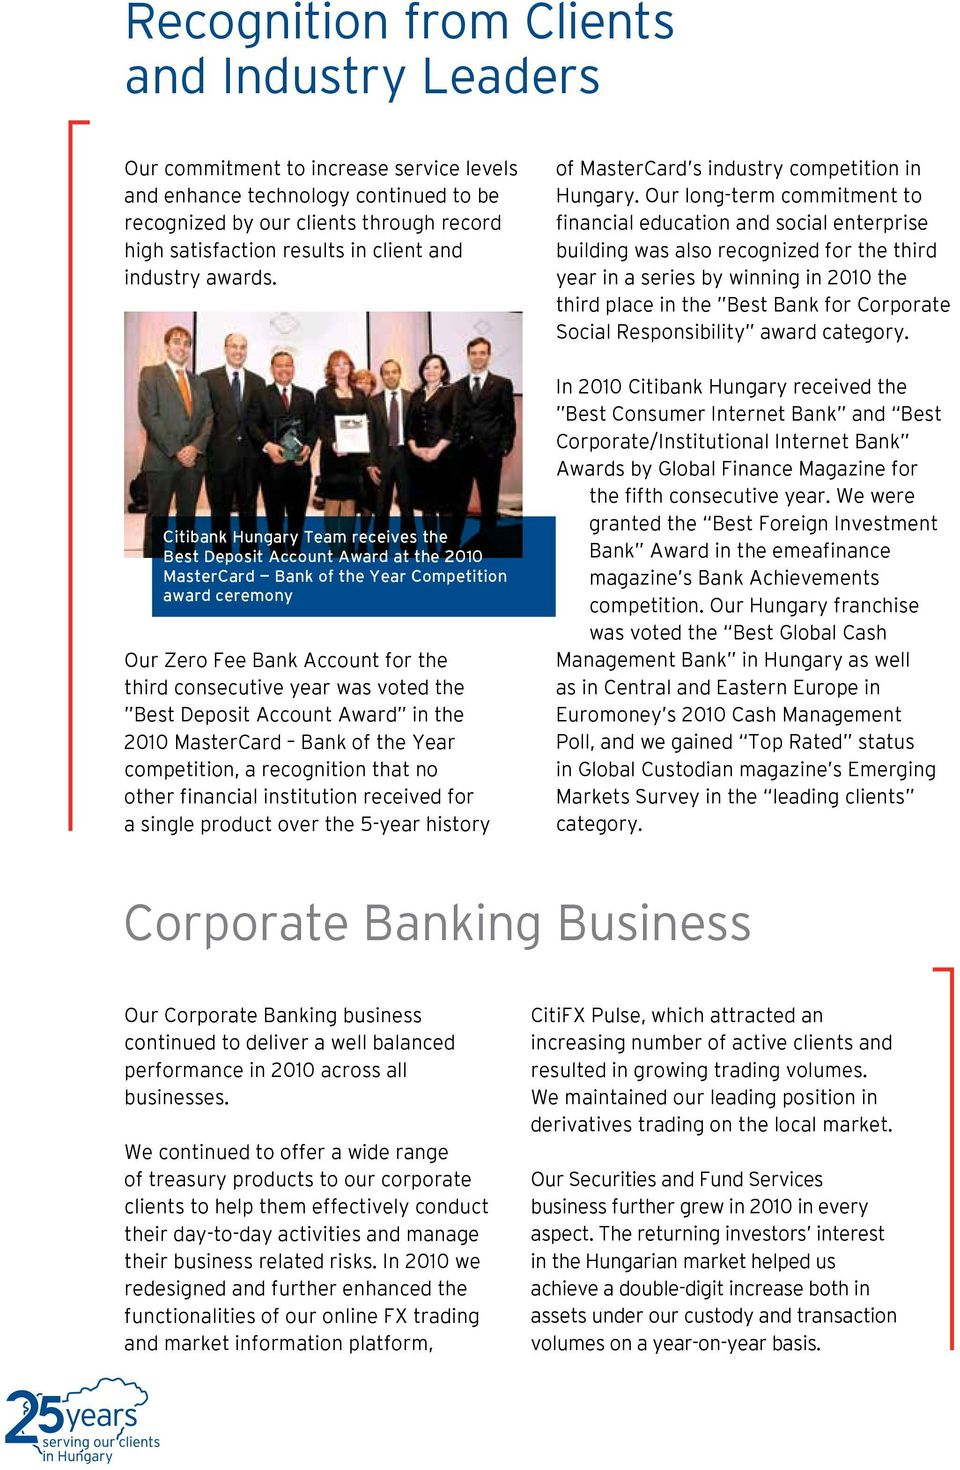 Citibank Hungary Team receives the Best Deposit Account Award at the 2010 MasterCard Bank of the Year Competition award ceremony Our Zero Fee Bank Account for the third consecutive year was voted the